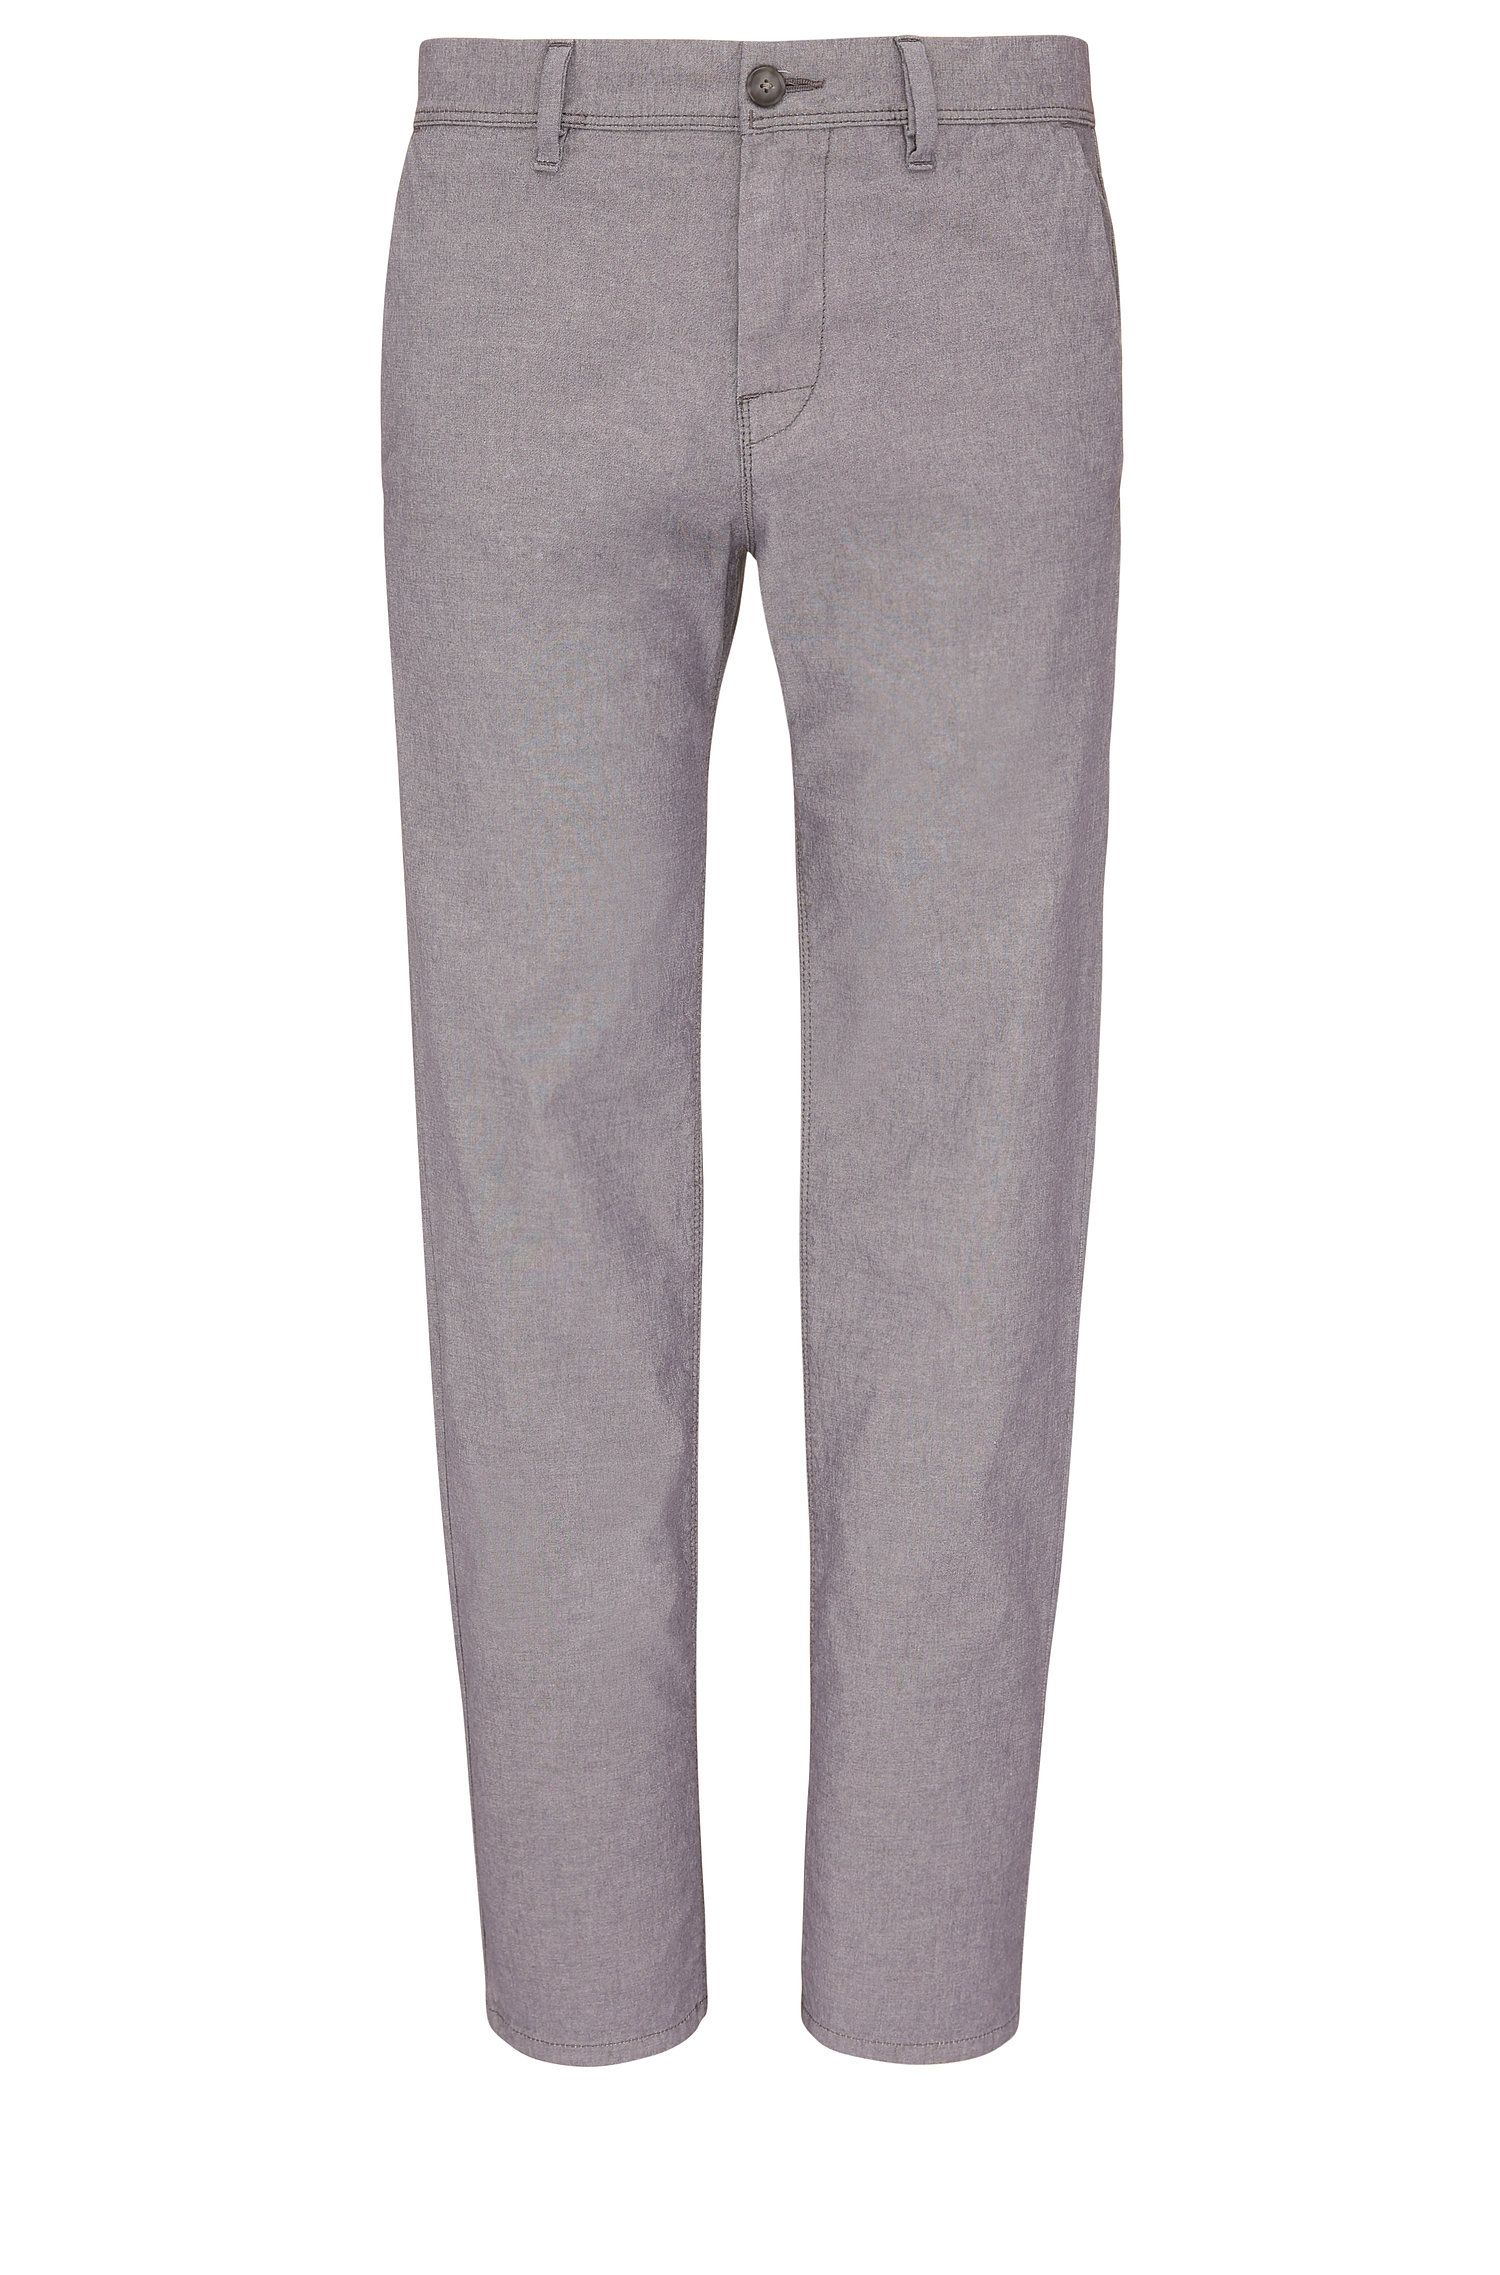 'Stapered W' | Tapered Fit, Stretch Cotton Trousers